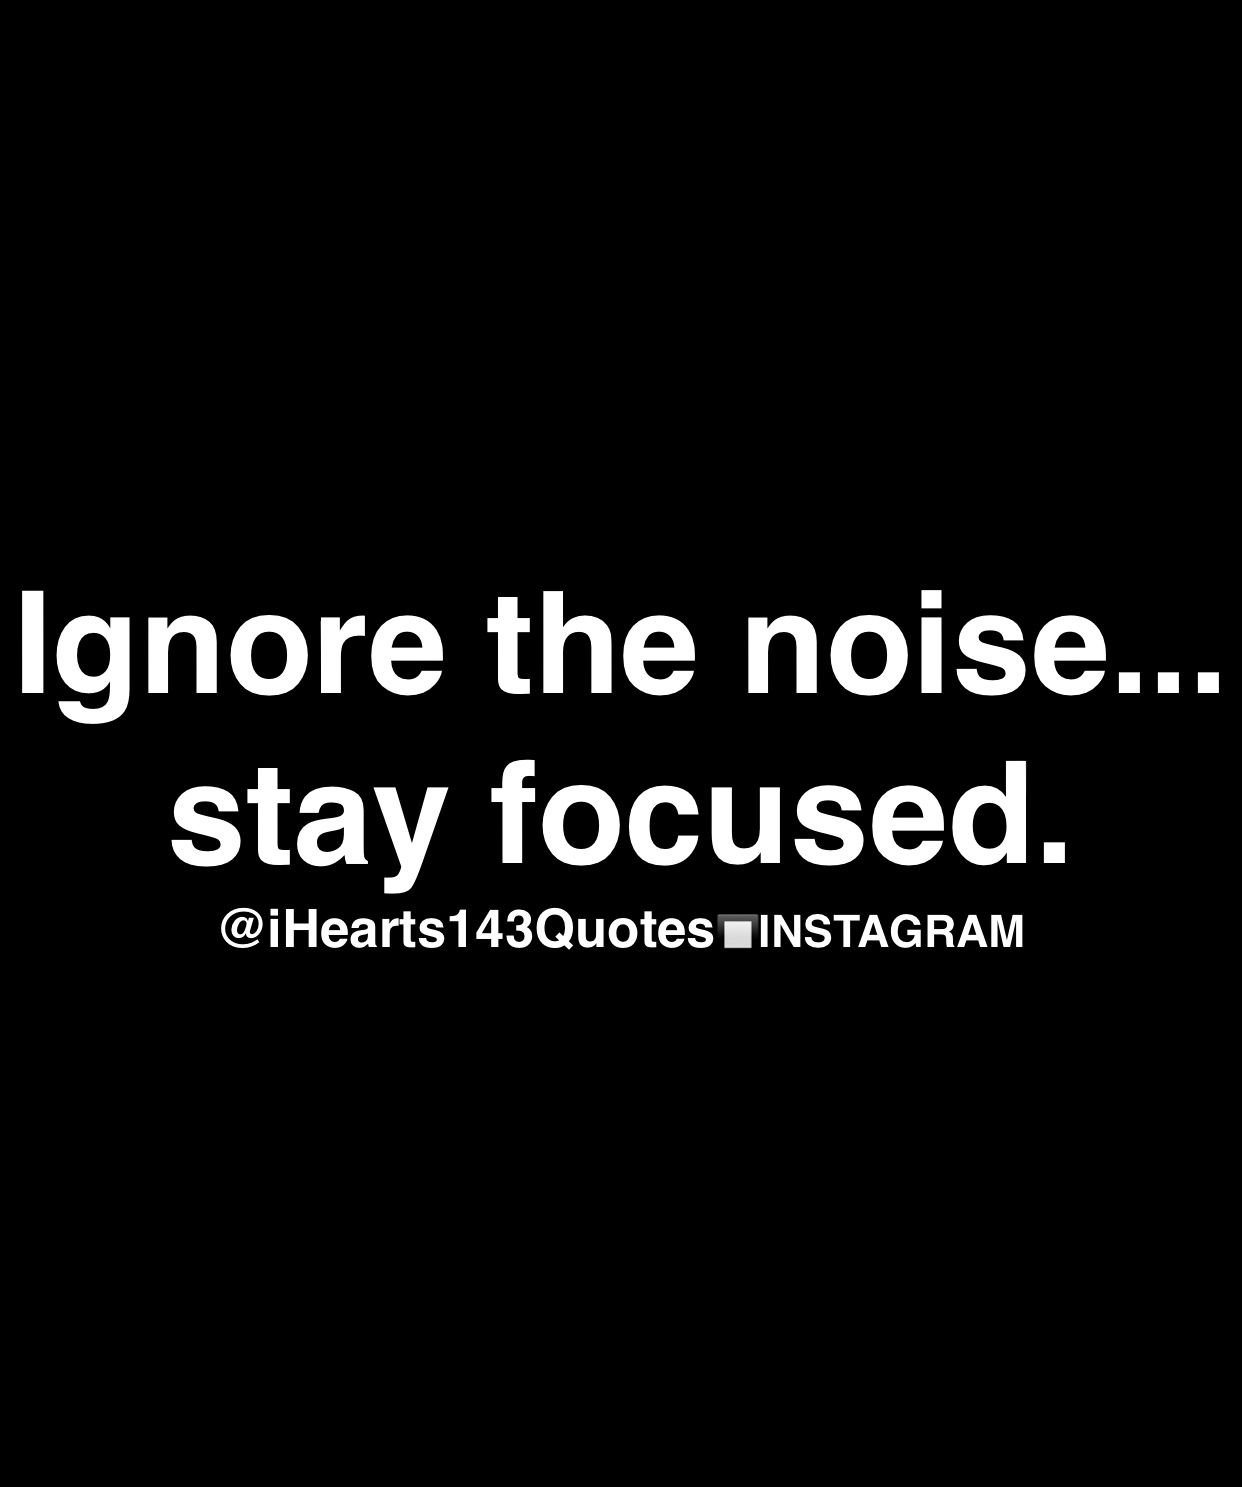 Stay Focused Quotes Sunday Funday Just Like Any Other Day Smash It Own It Make It